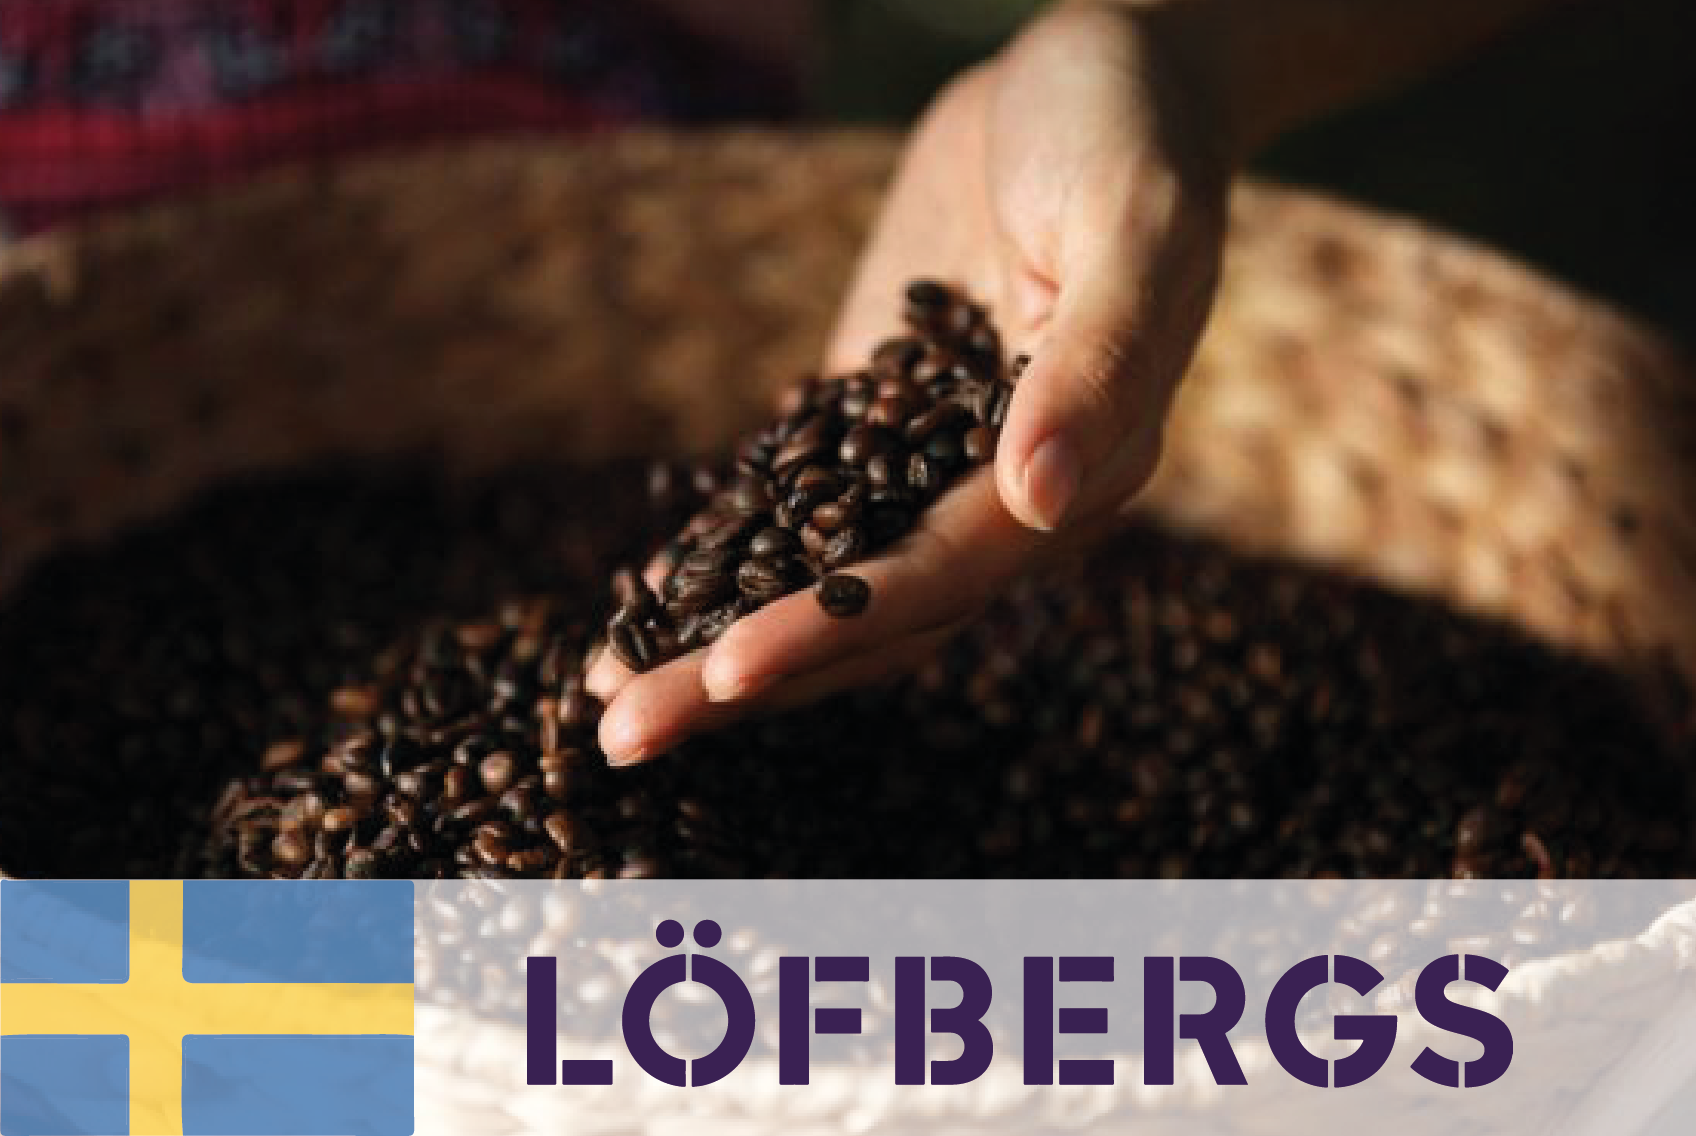 #19 Löfbergs – Coffee company with extended value chain responsibility - CIRCit Nord